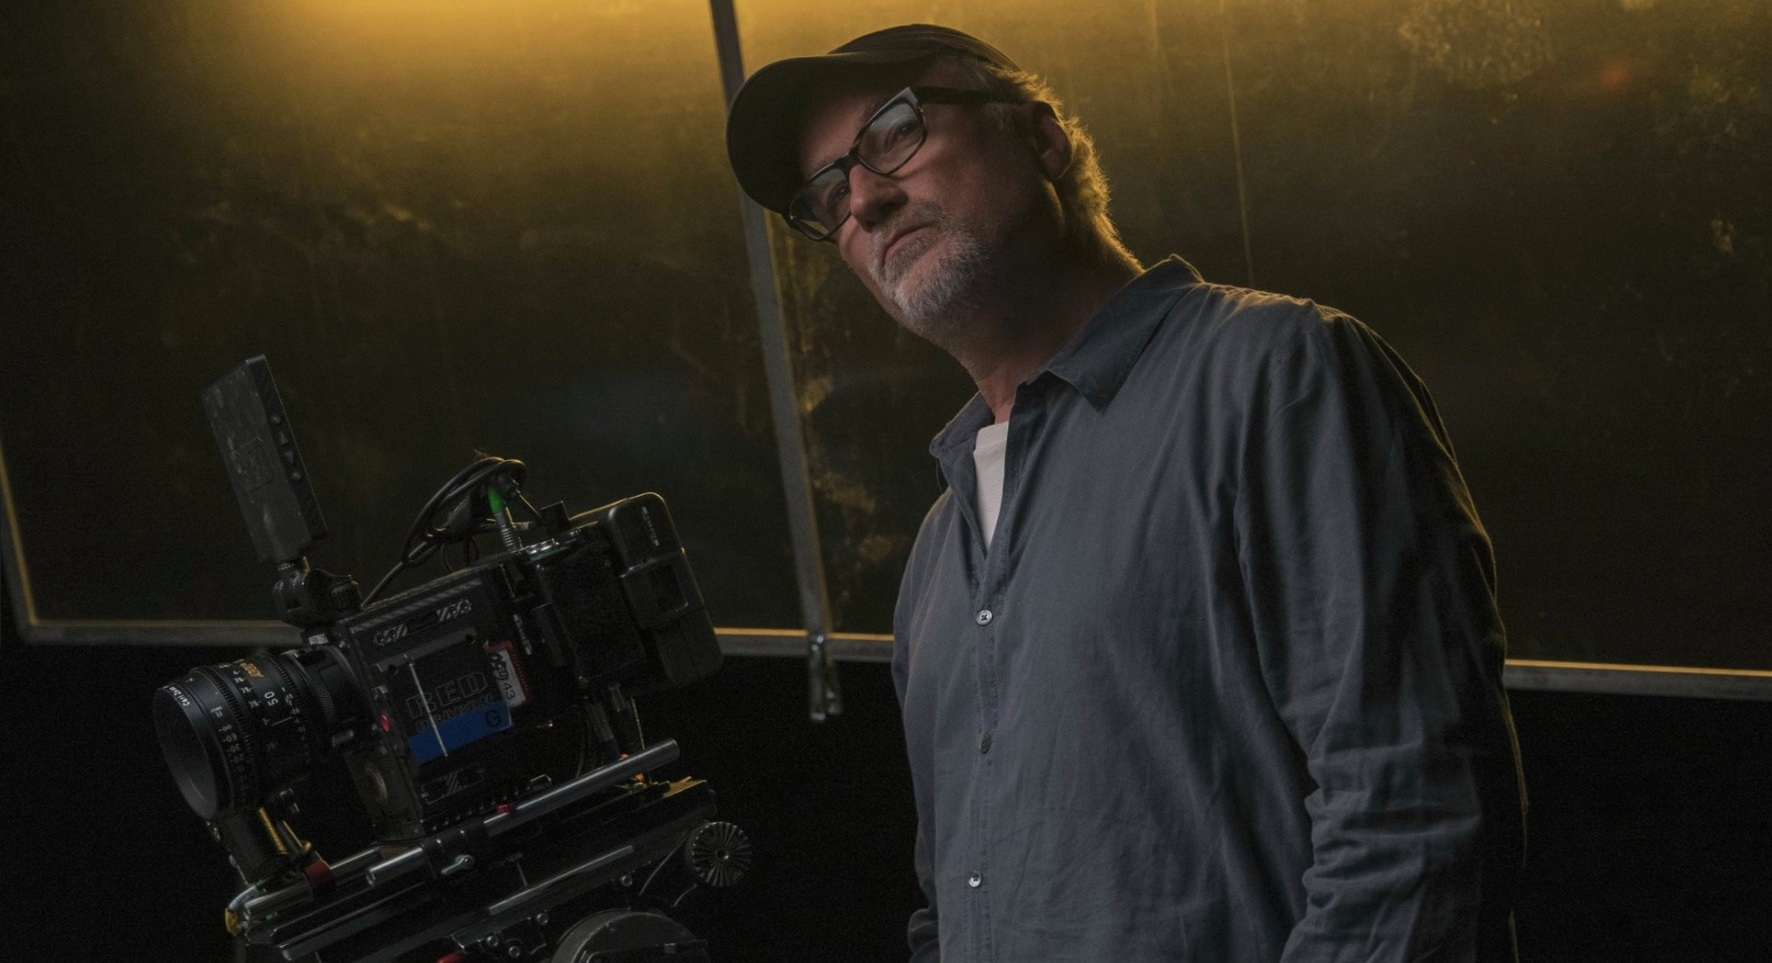 David Fincher on the set of Netflx's Mindhunter.